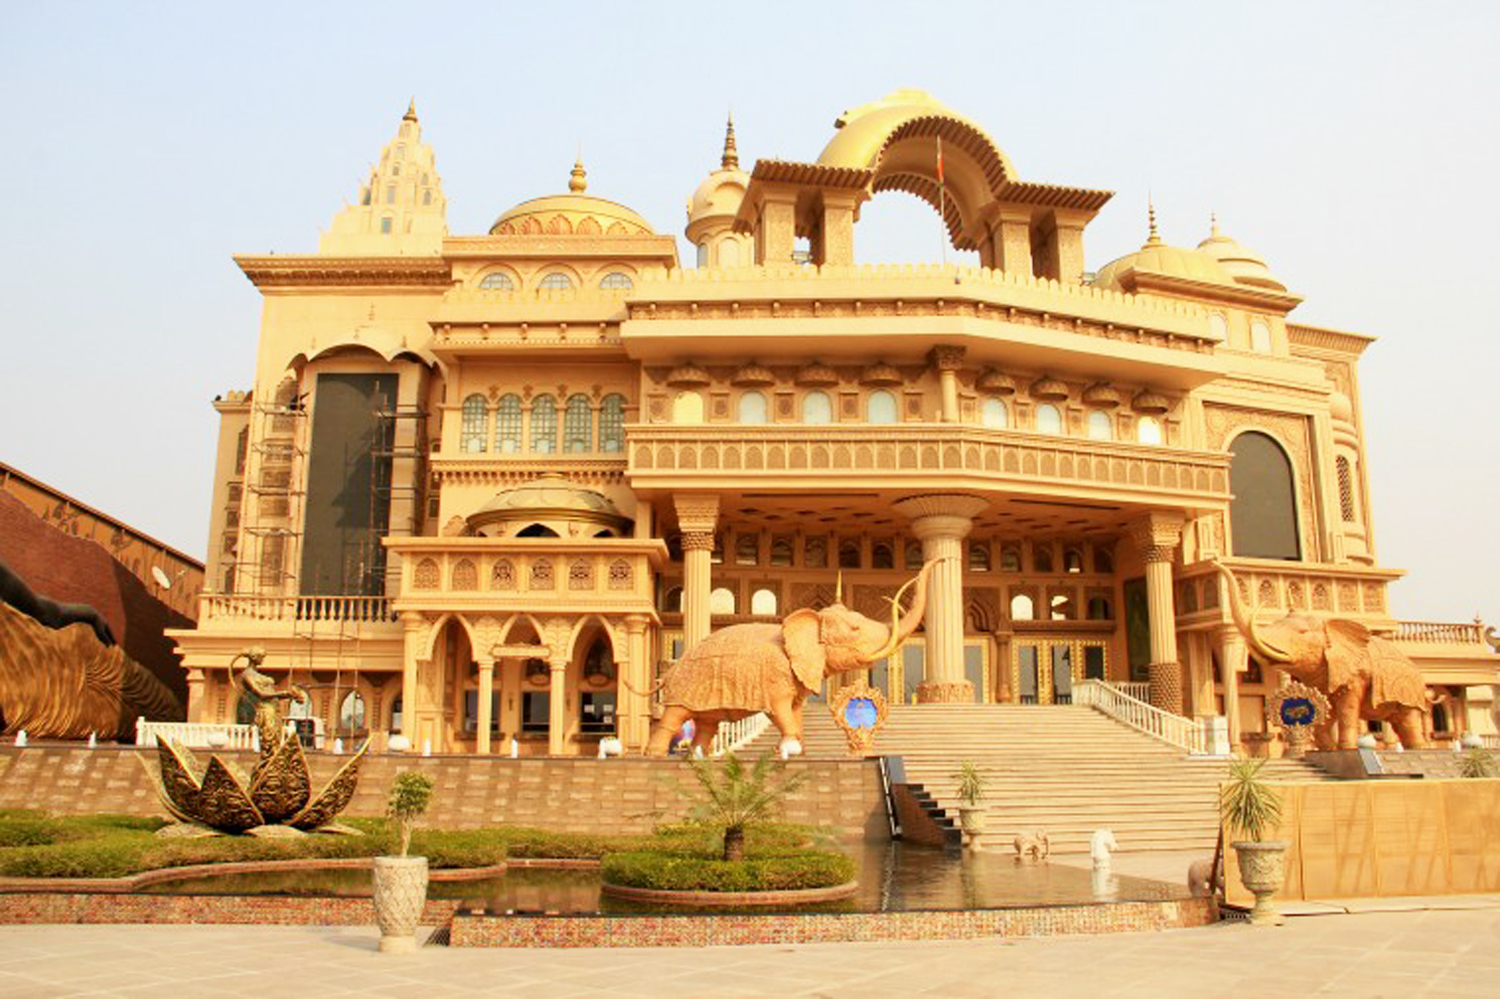 Kingdom Of Dreams in Gurgaon - Complete Travel Guide